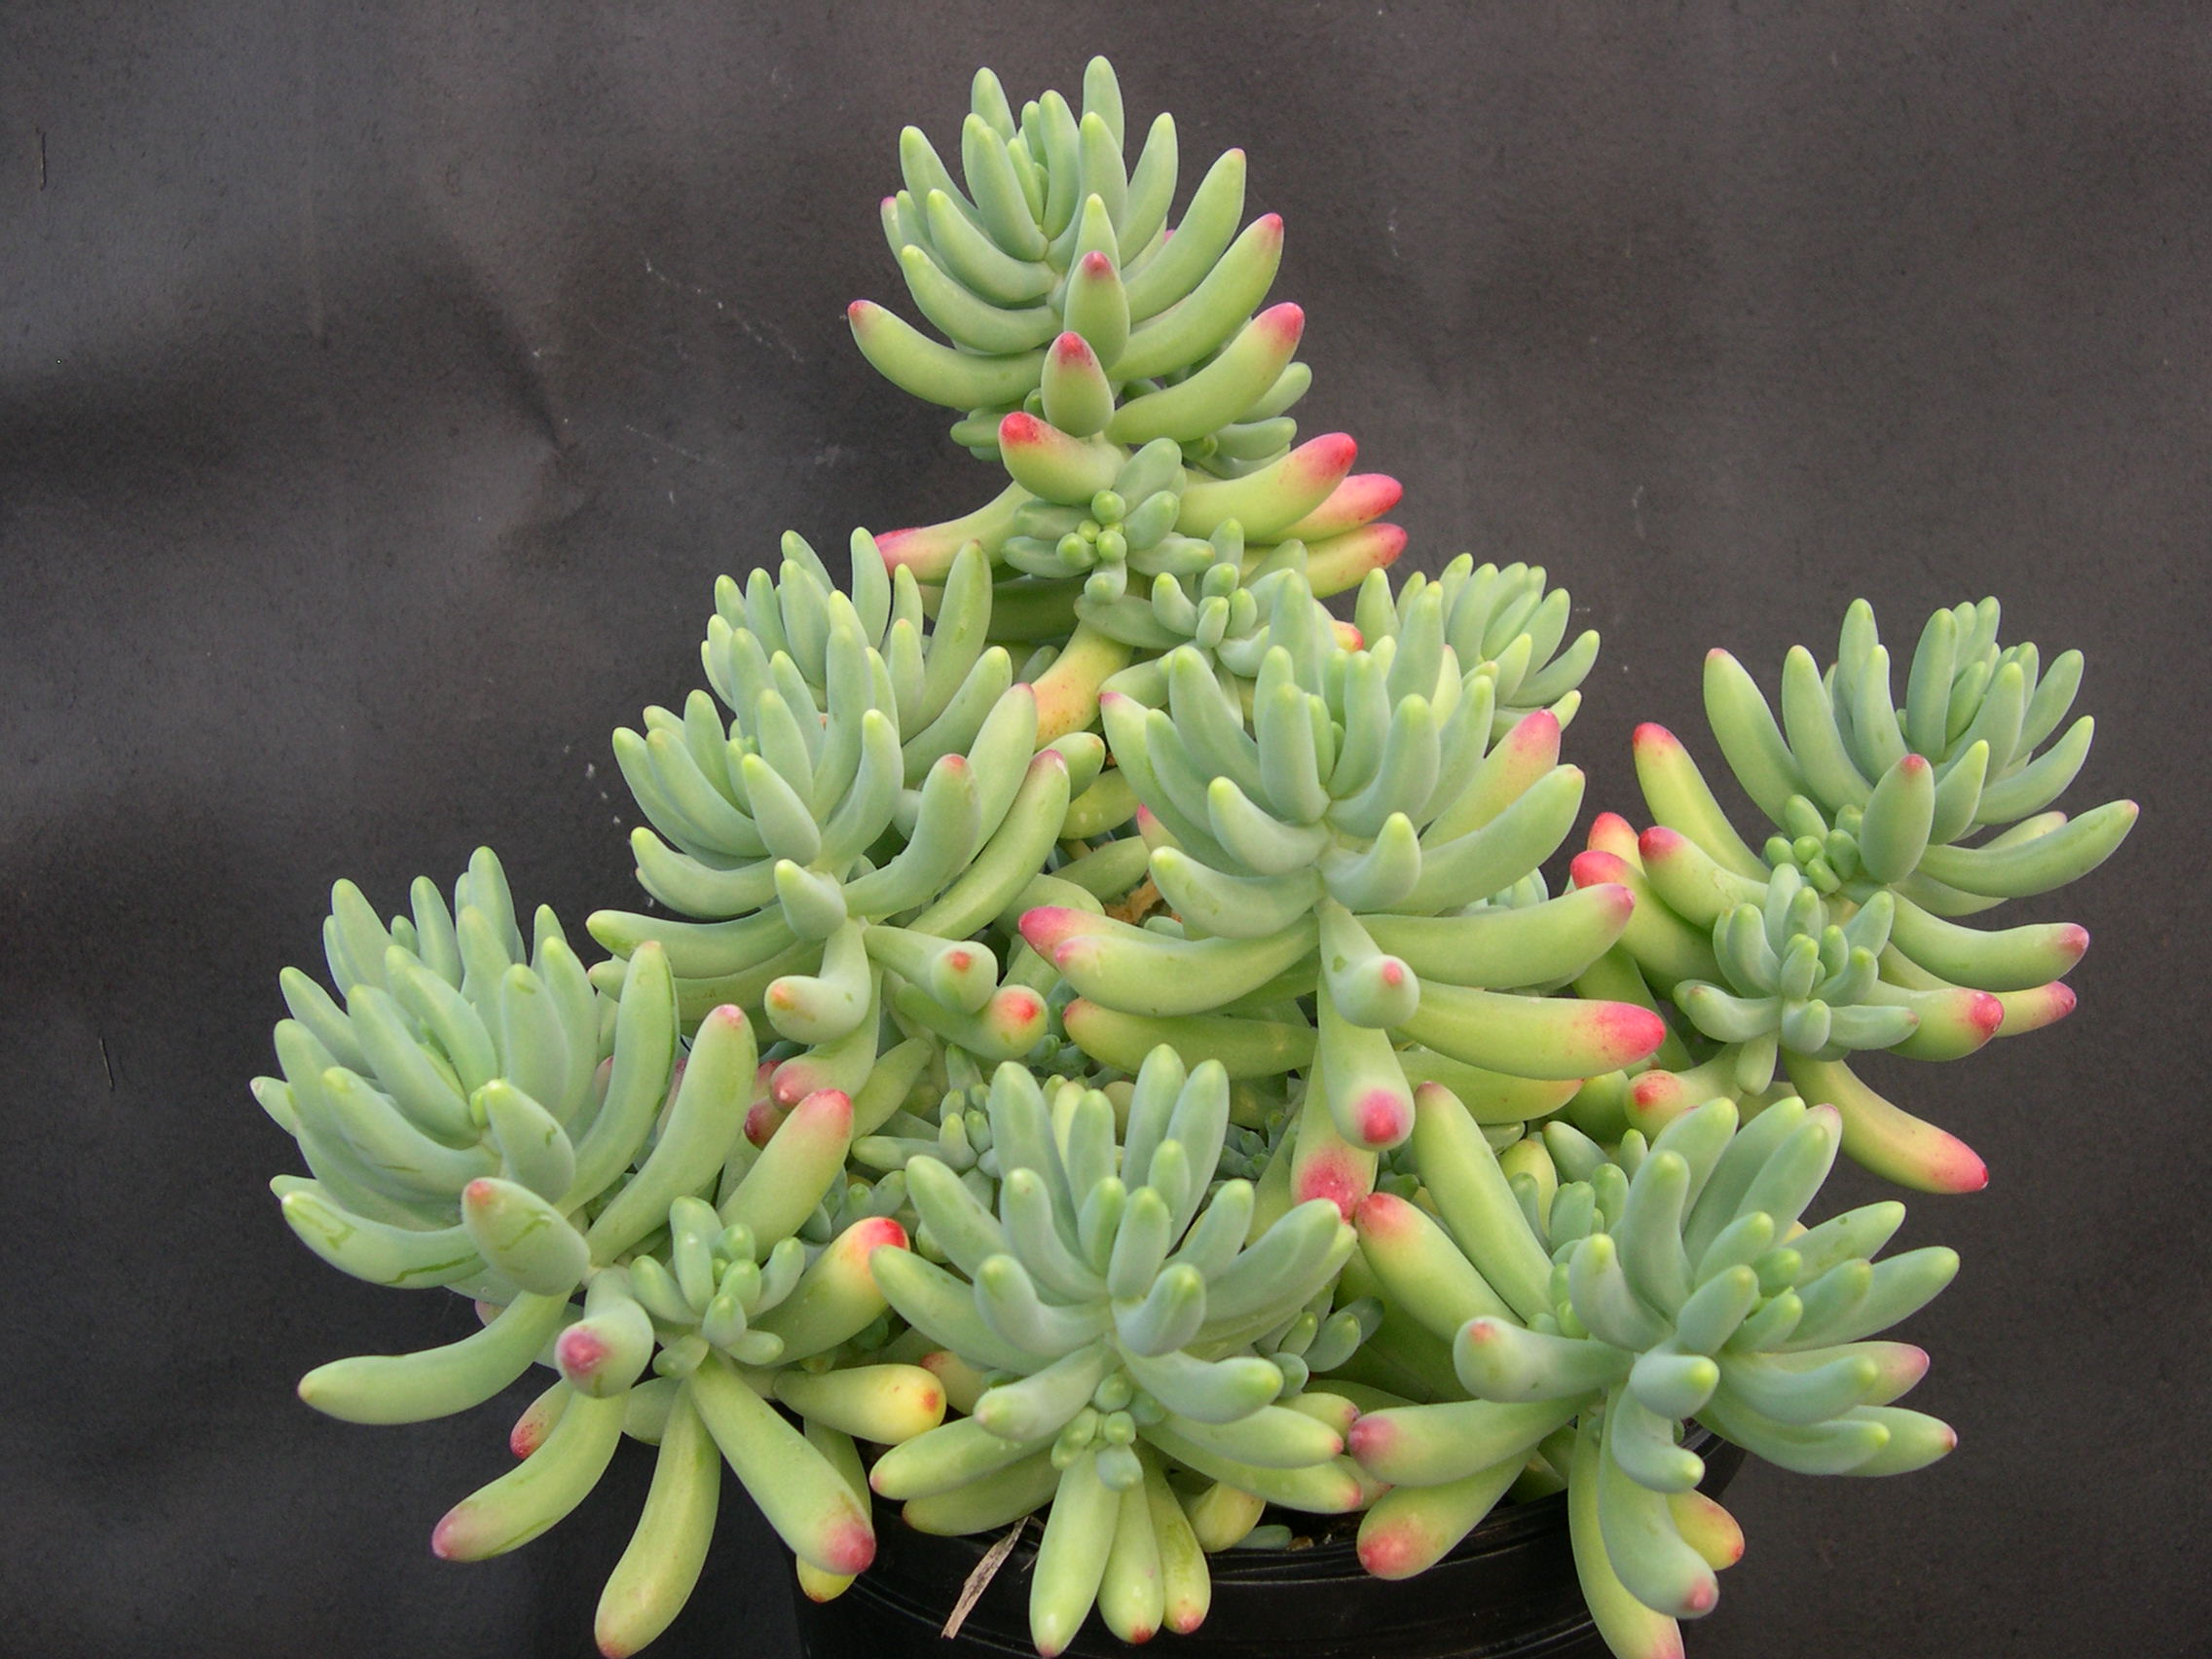 Sedum pachyphyllum thin blue form (1)